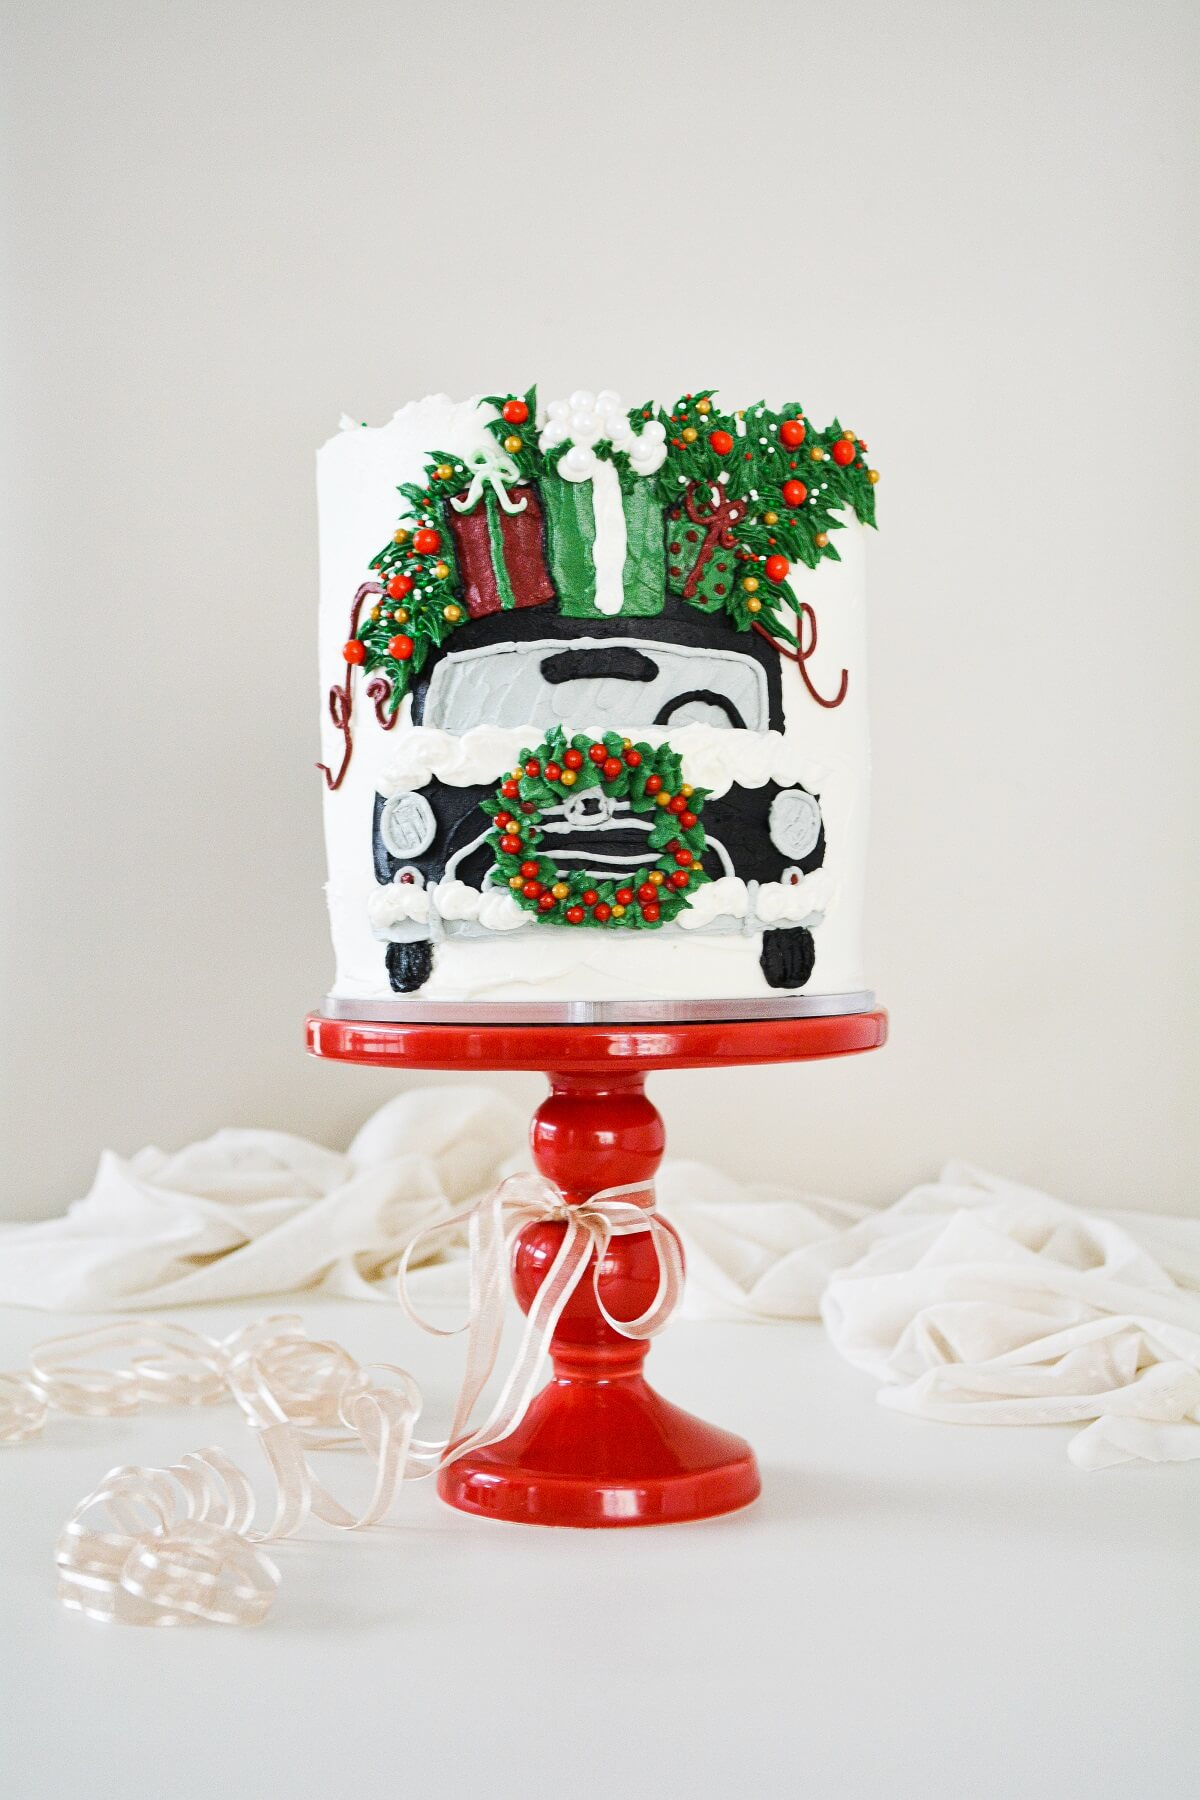 A Christmas cake decorated with a car and presents painted in buttercream.